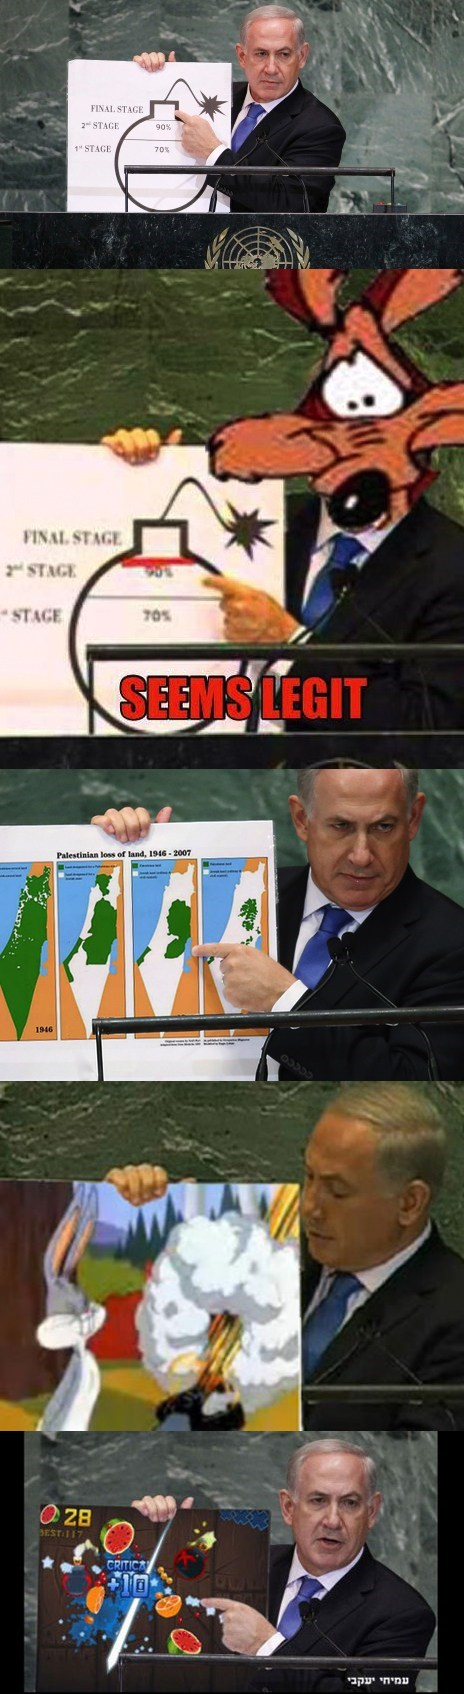 The Internet's Response to Netanyahu's Presentation